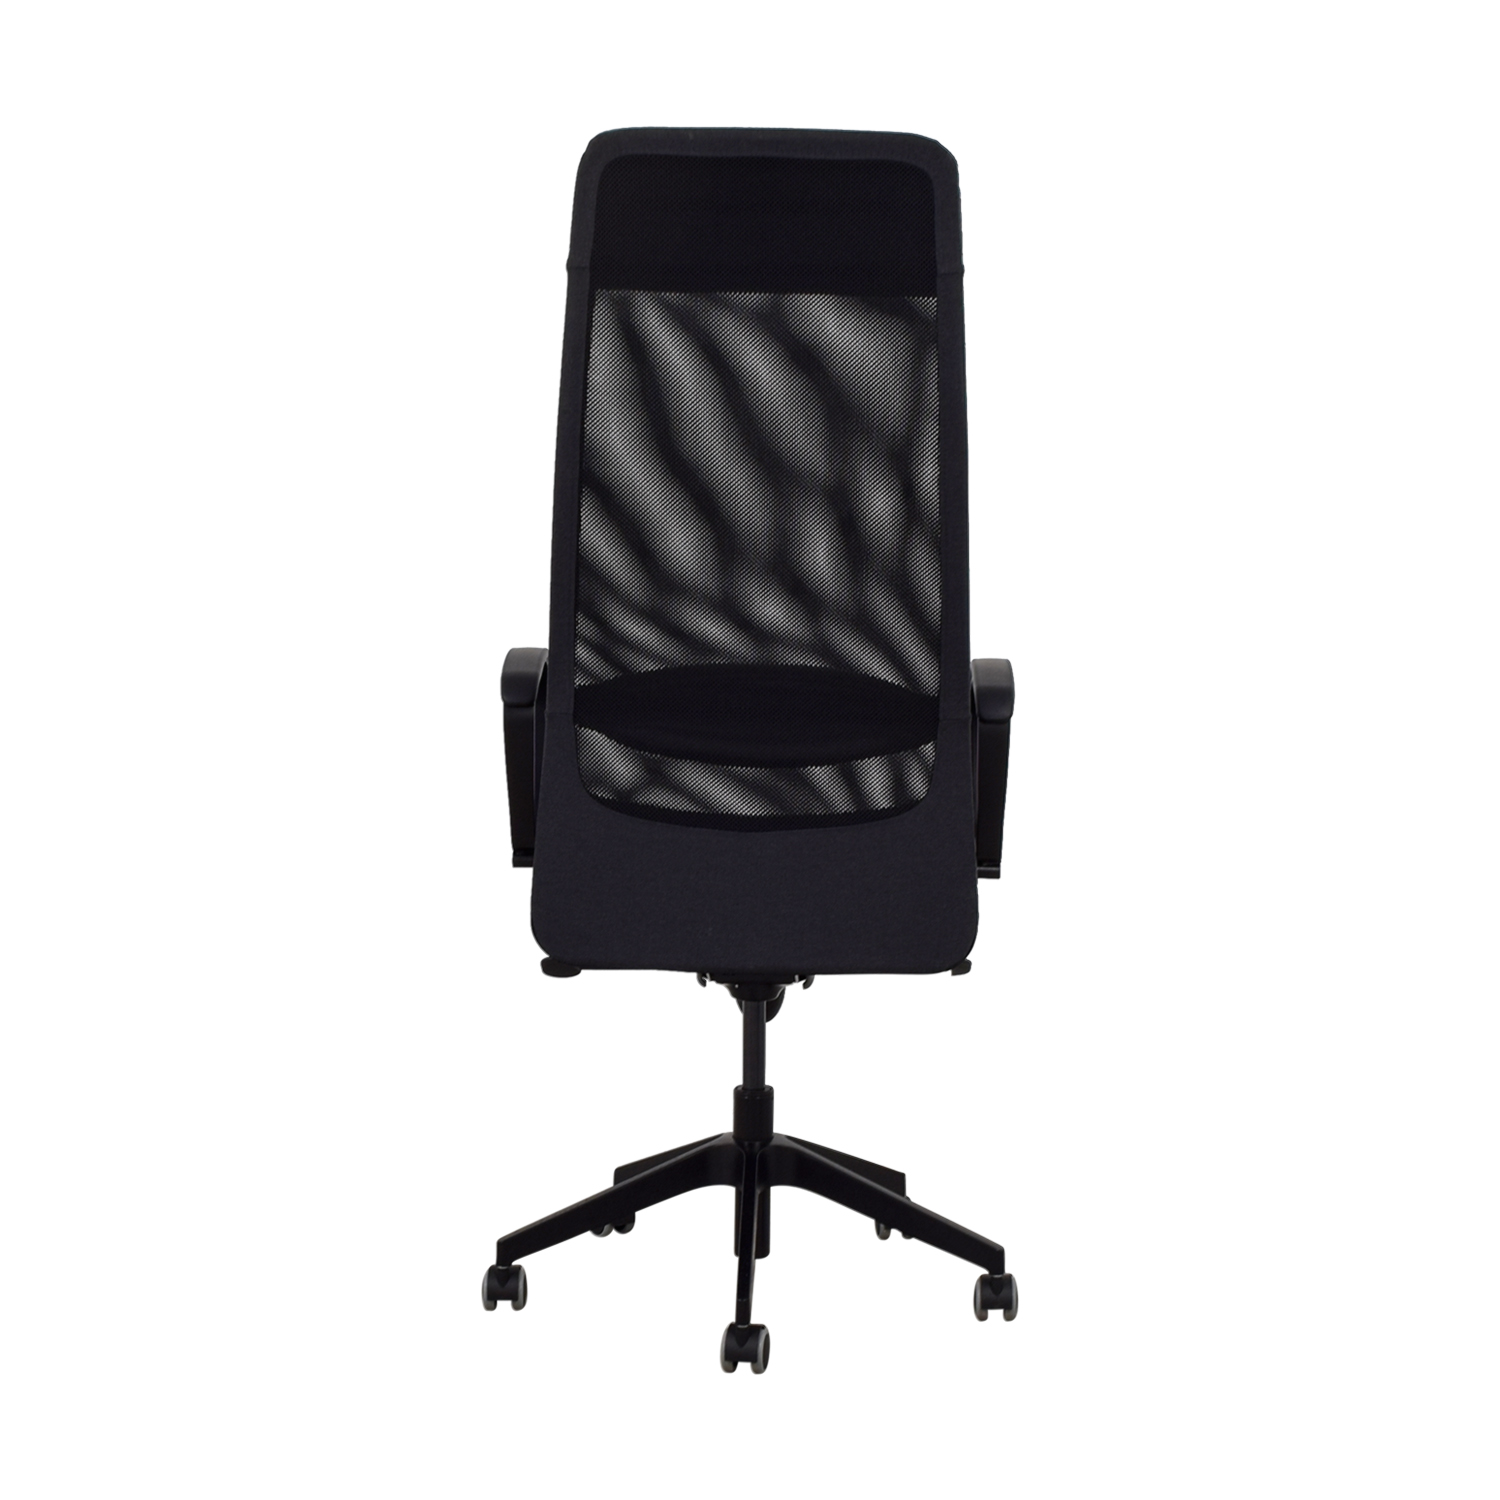 IKEA IKEA Black Office Chair